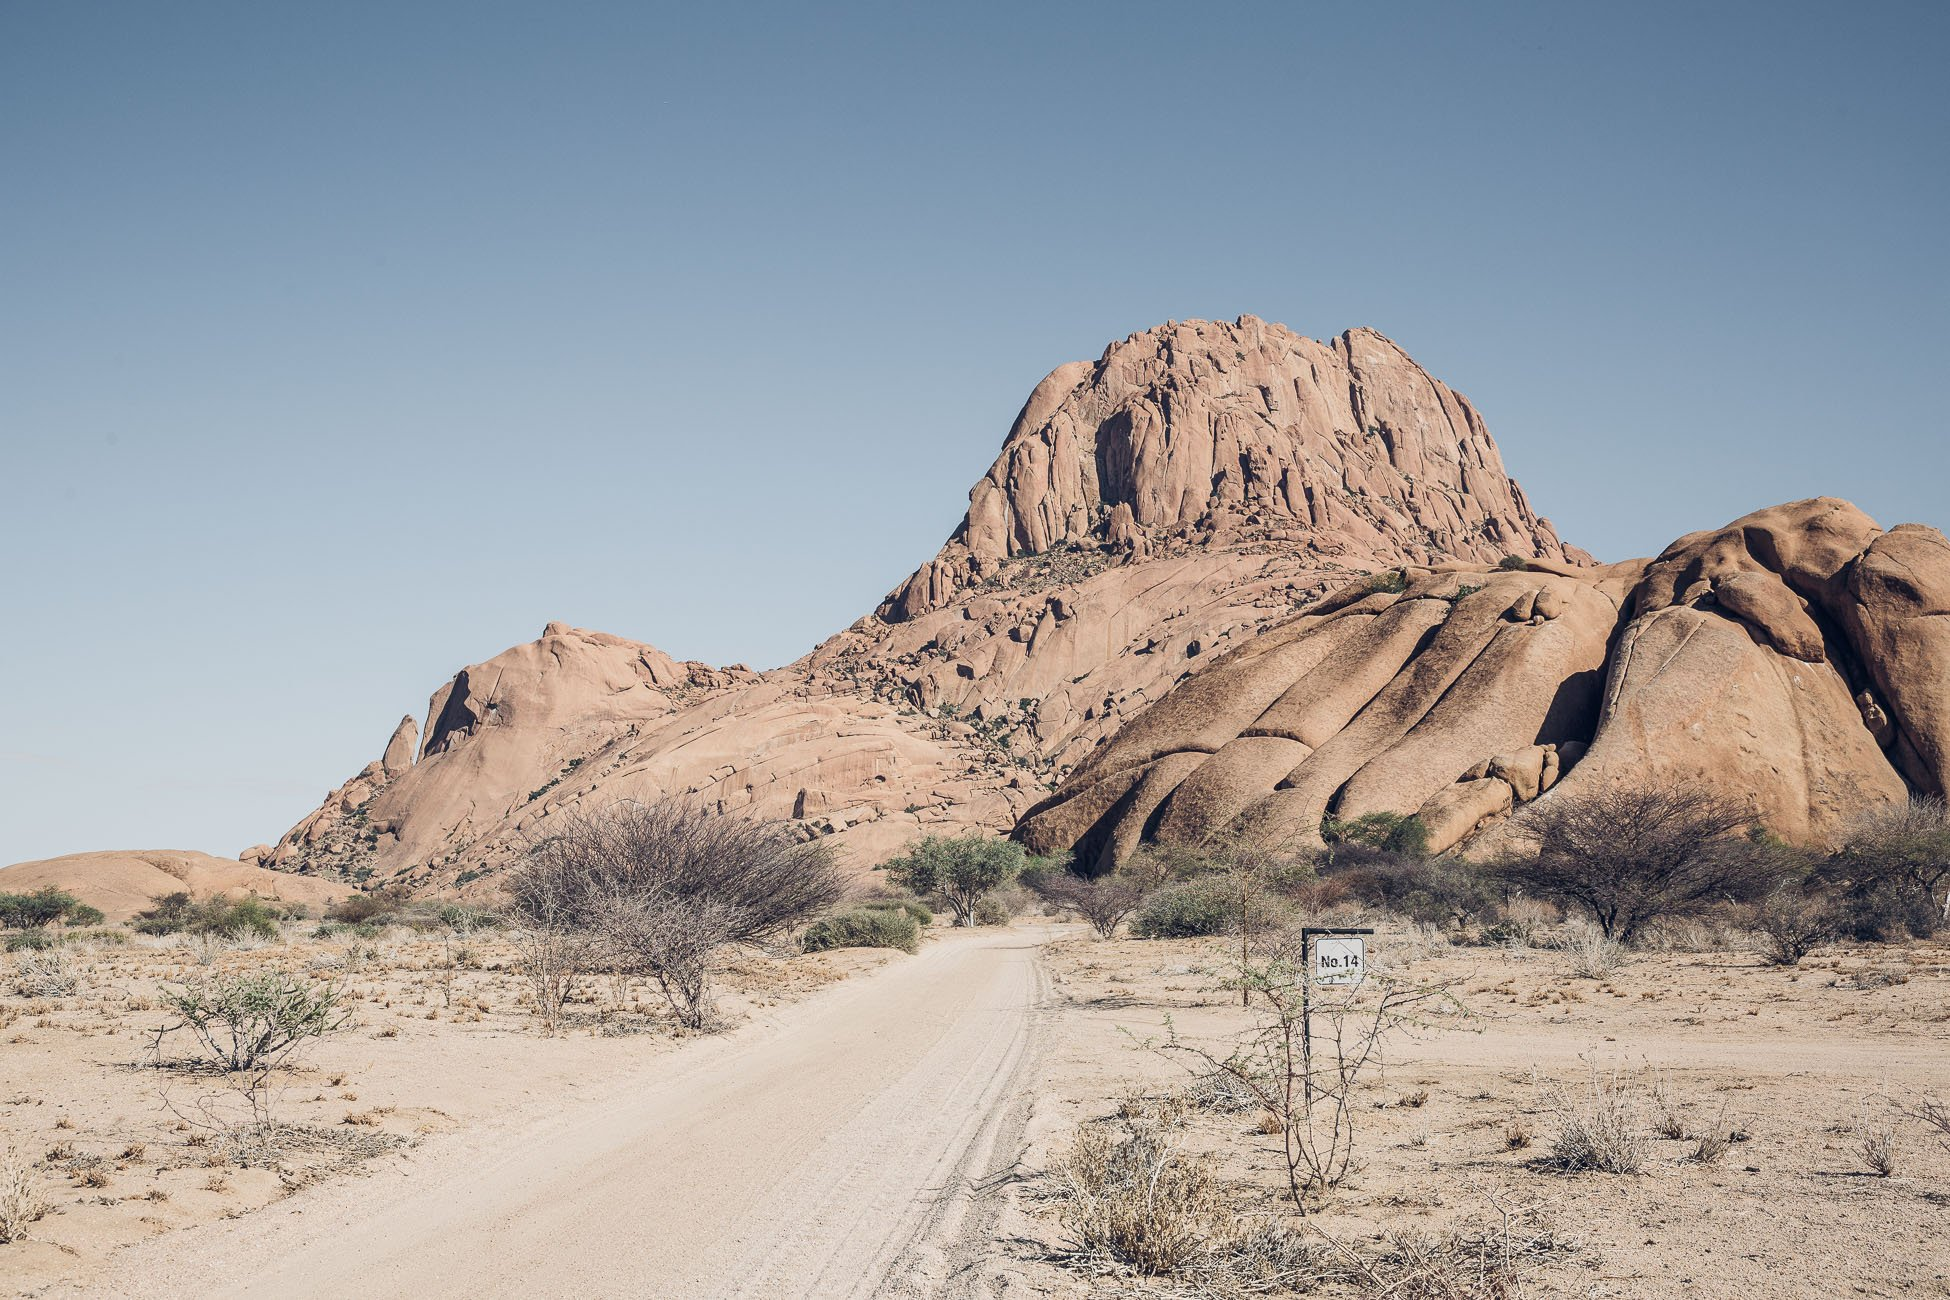 Camping at Spitzkoppe Namibia